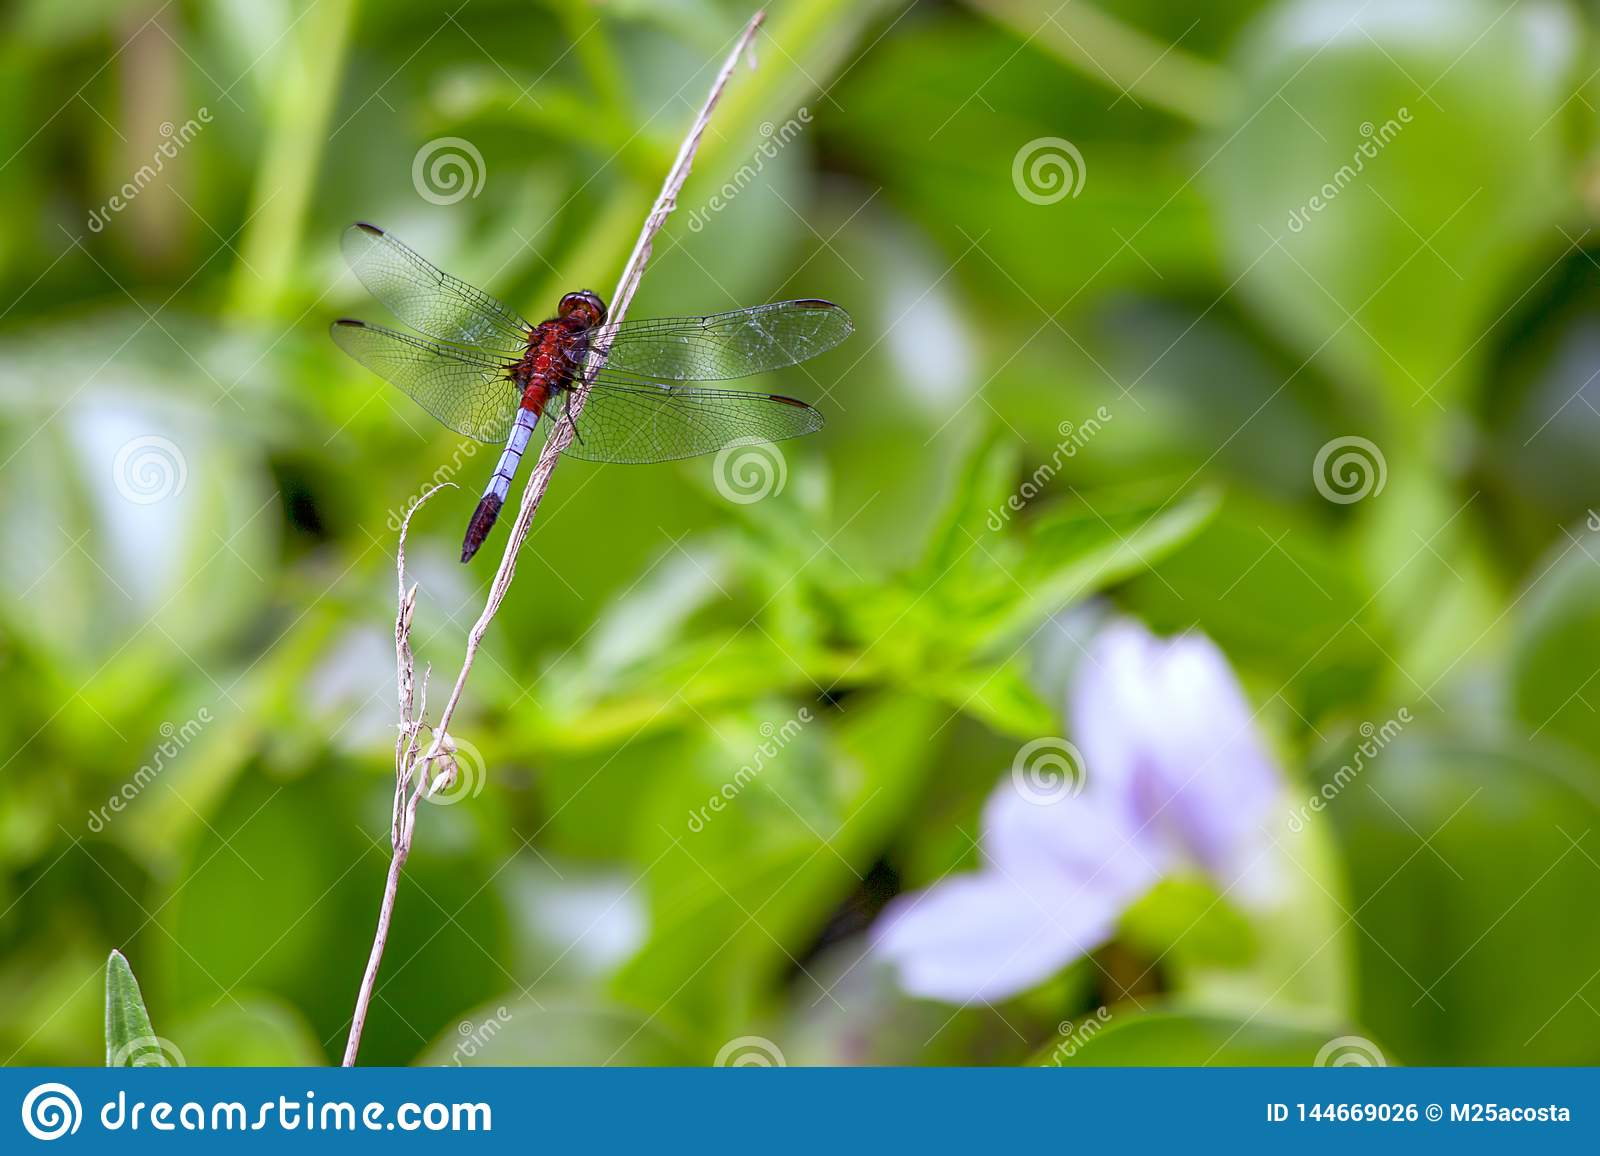 Dragonfly resting on a dry straw of grass